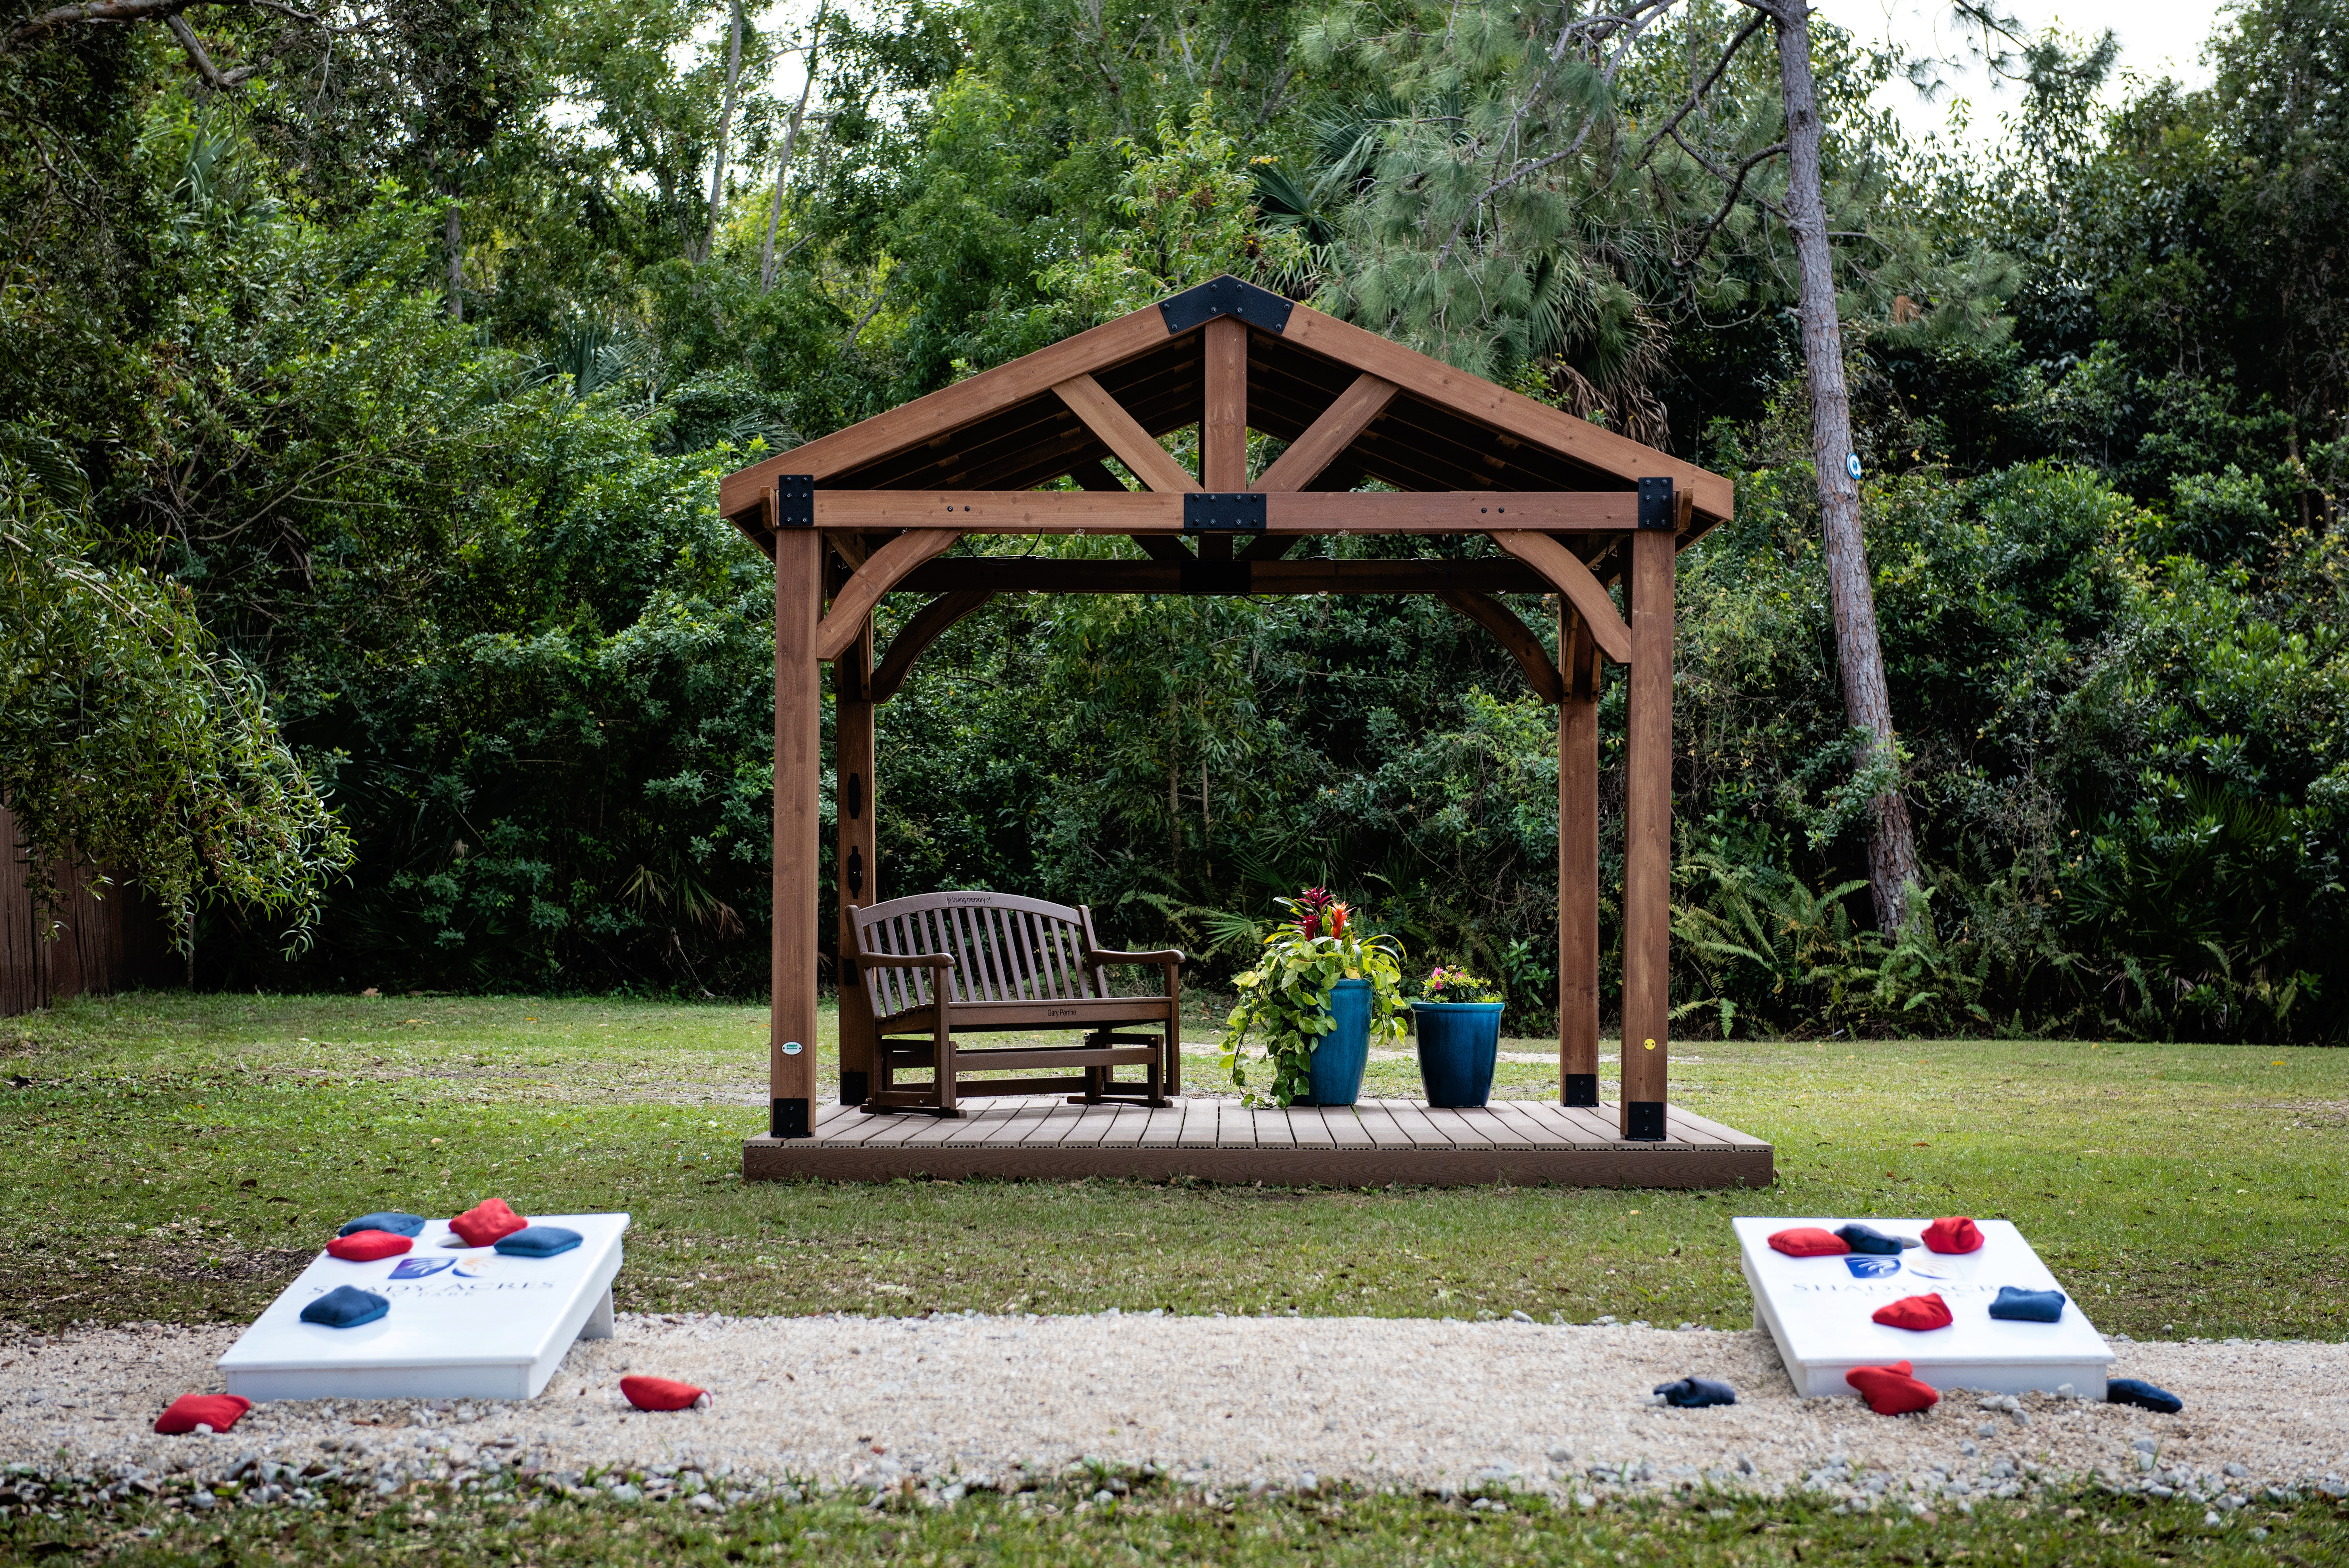 Sit back and relax or enjoy a game of corn hole.